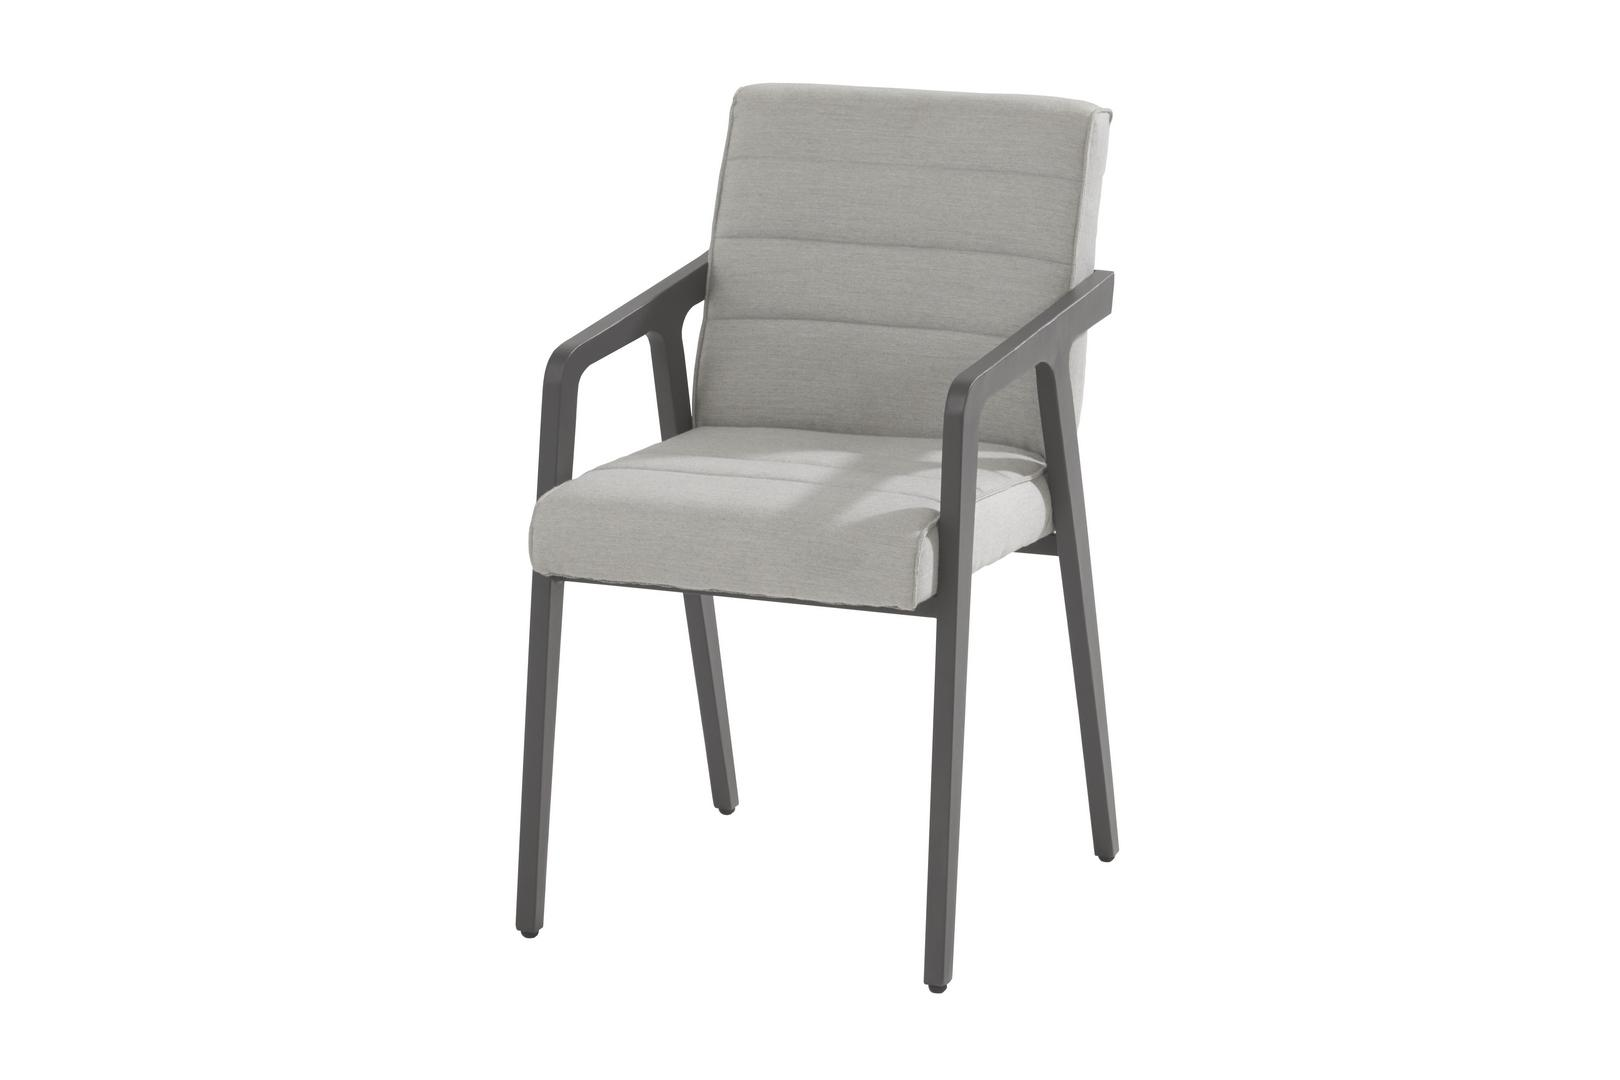 4 Seasons Outdoor Aragon dining chair 4 Seasons Outdoor